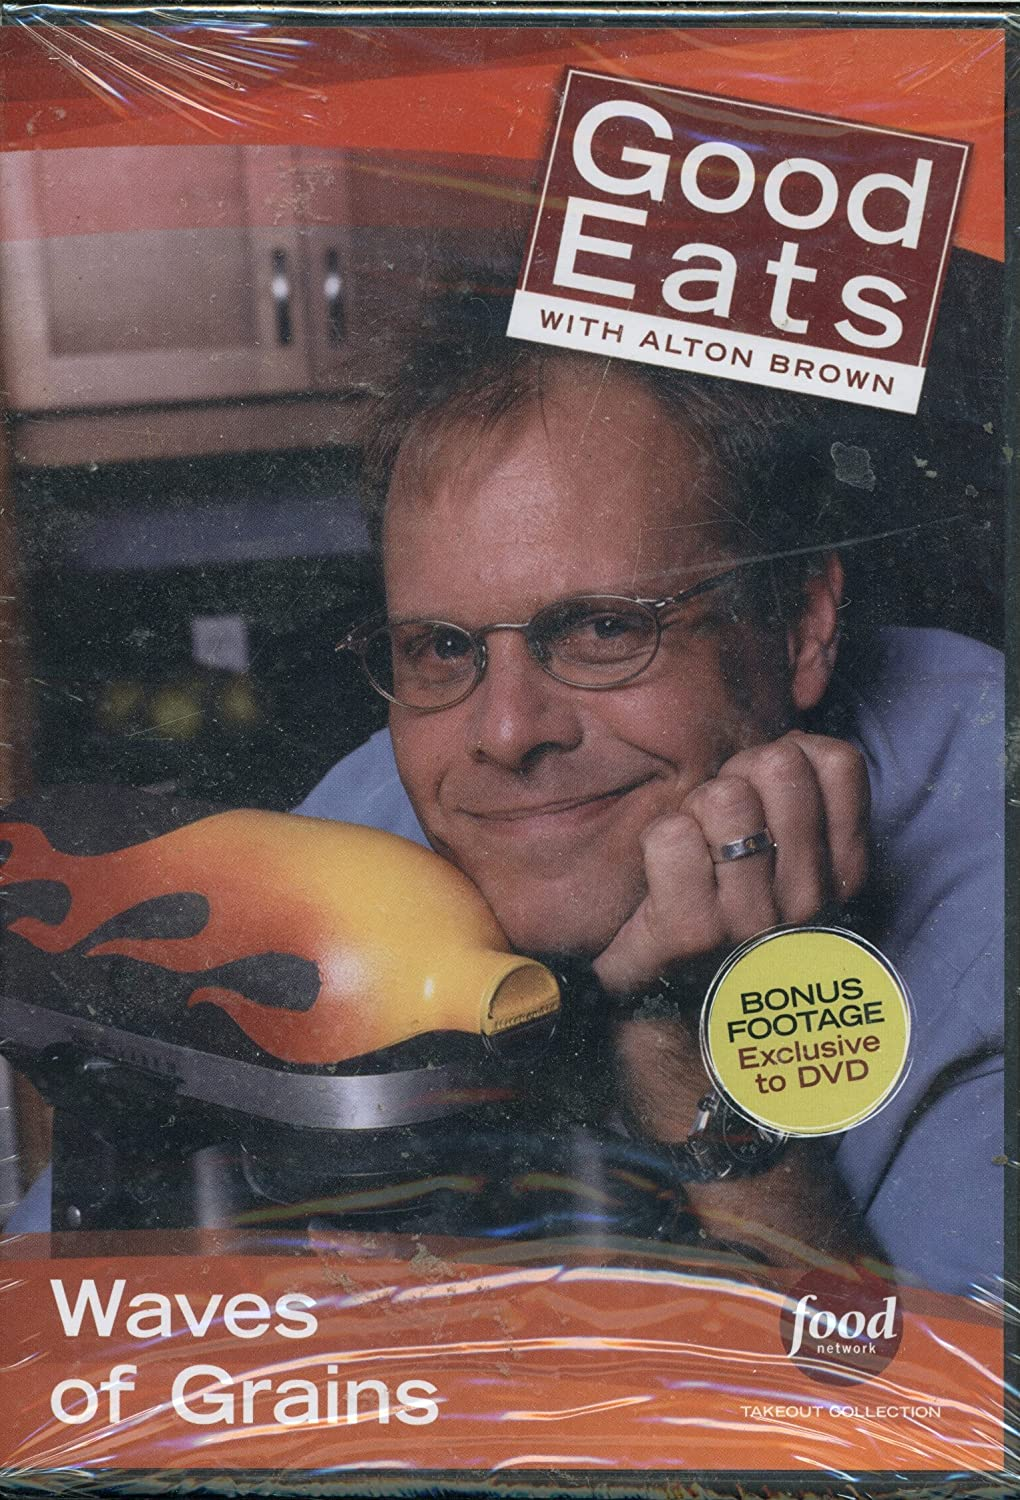 Food Network Takeout Collection DVD - Good Eats With Alton Brown Waves of Grain Includes True Grits / Gotten Grains 3 / Power to the Pilaf